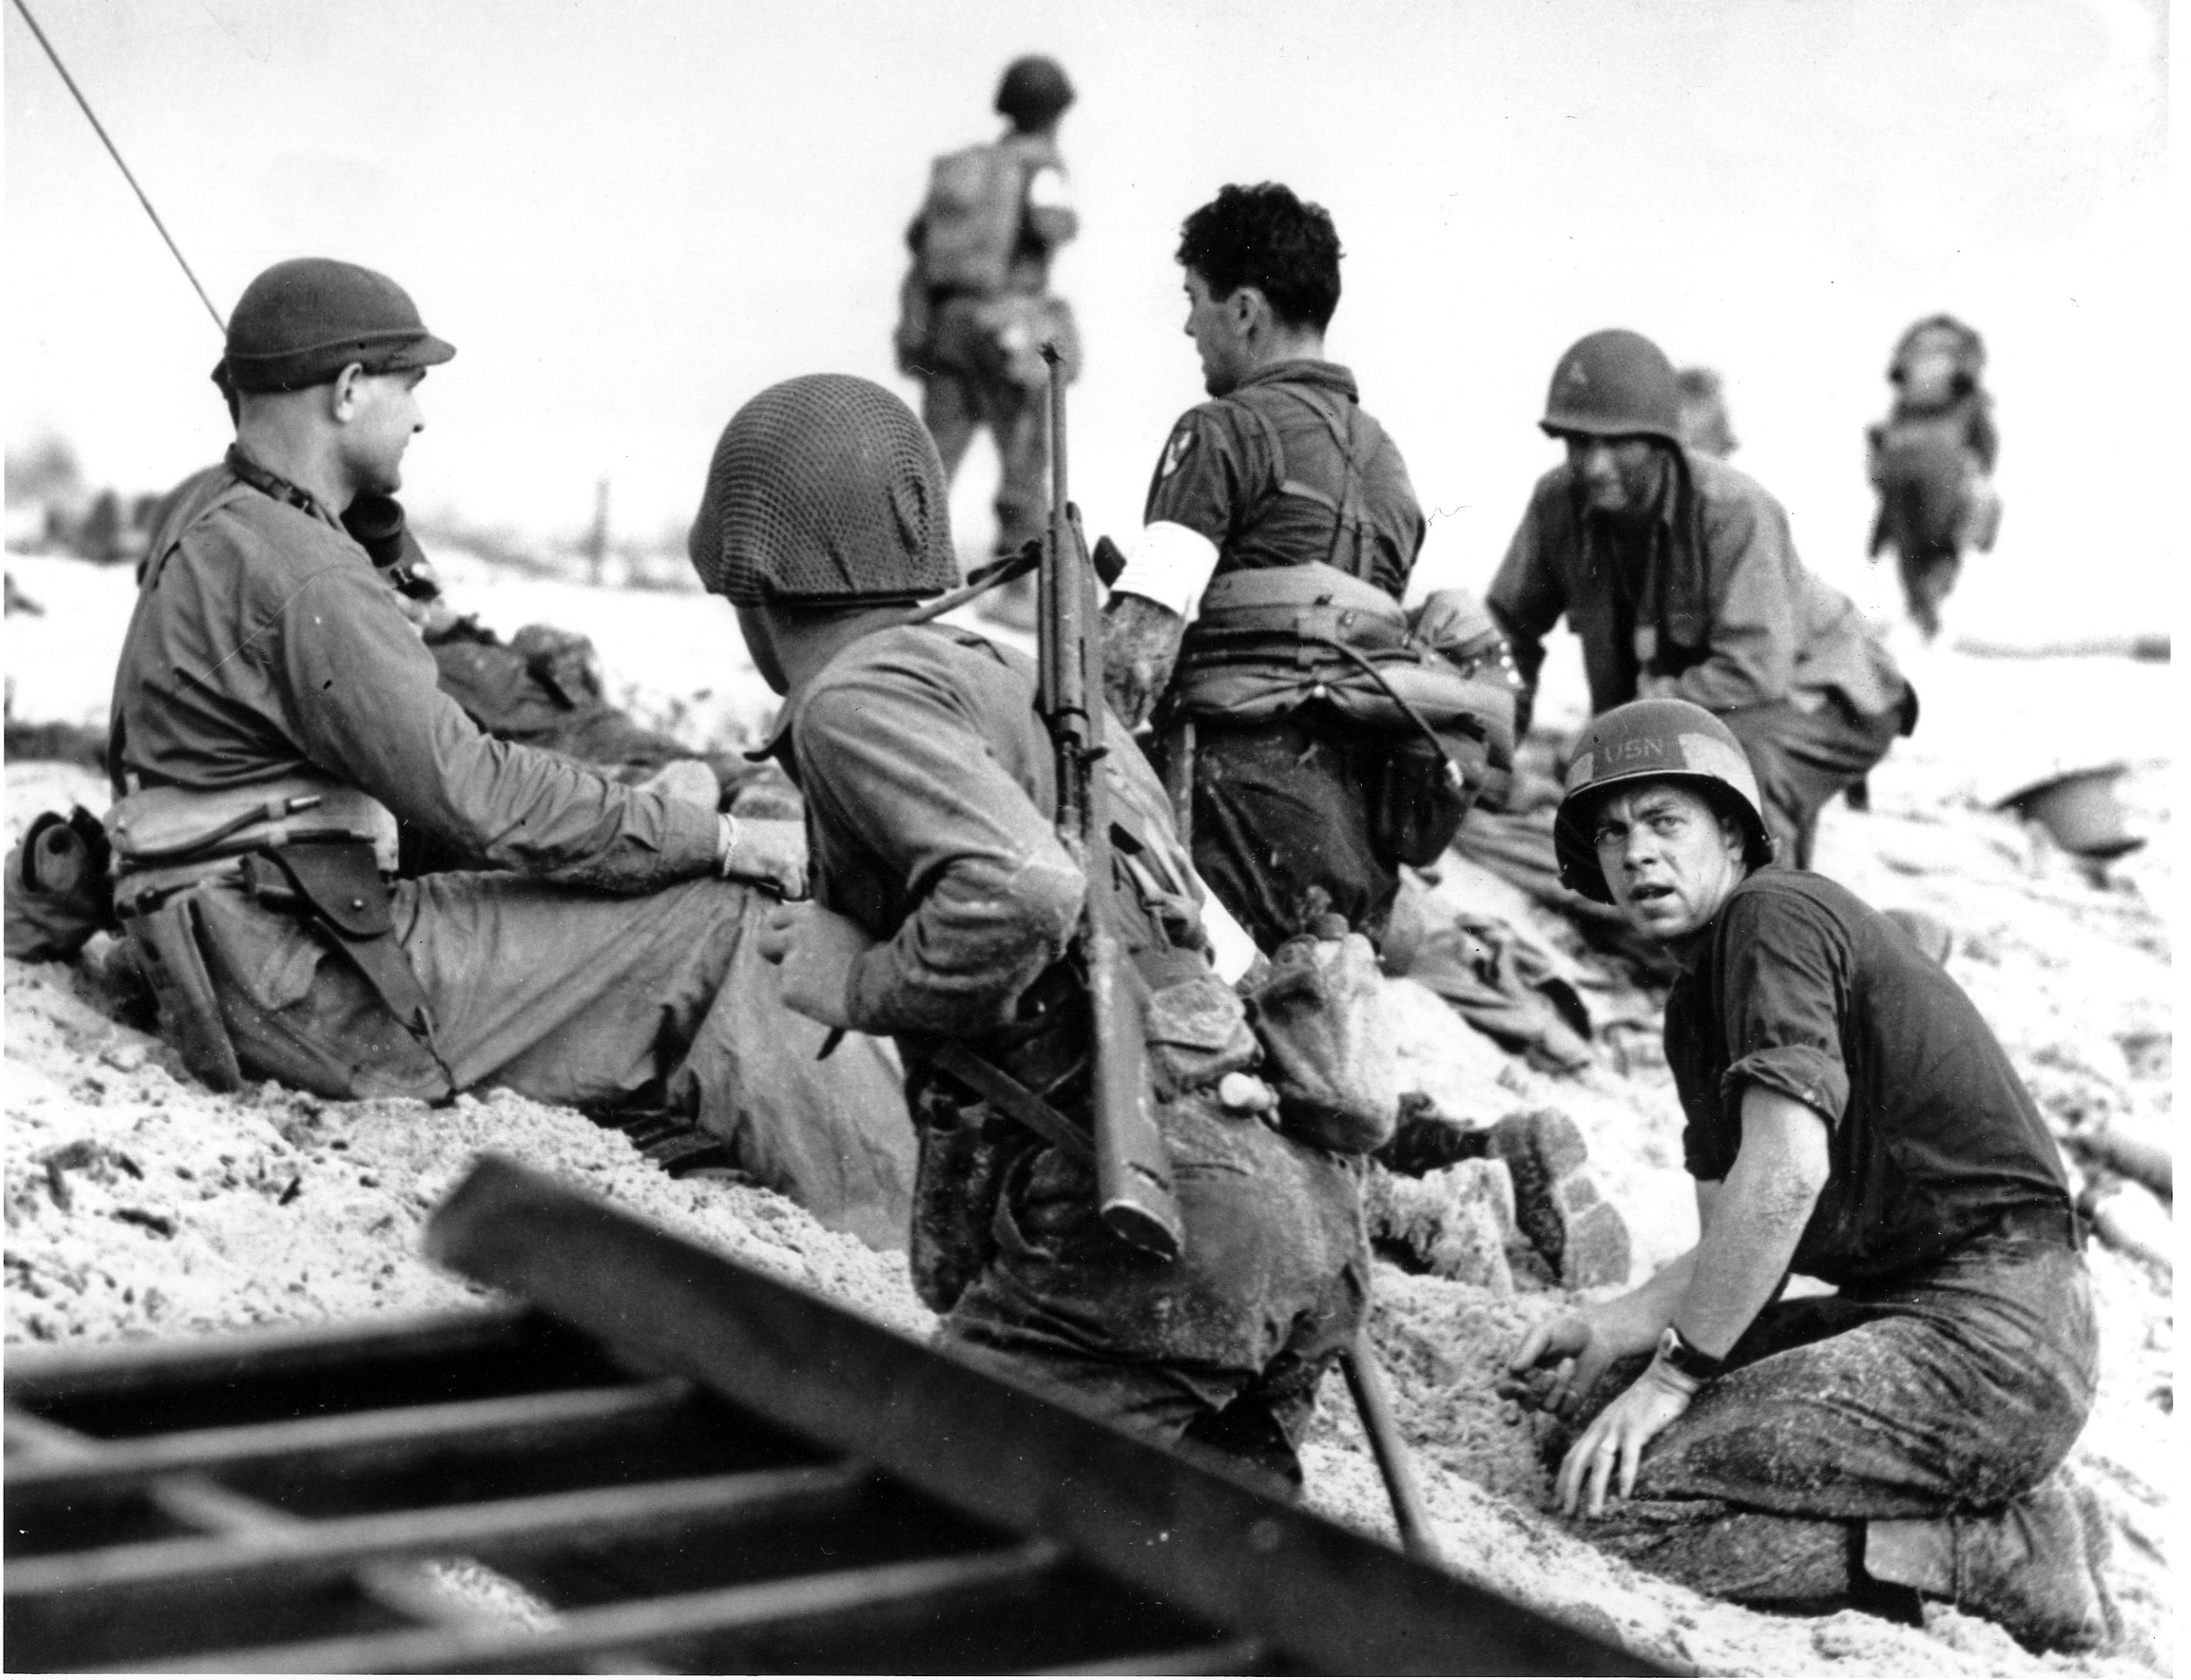 A first wave beach battalion Ducks lays low under the fire of Nazi guns on the beach of southern France on D-Day, June 6, 1944 during World War II. One invader operates a walkie talkie radio directing other landing craft to the safest spots for unloading their parties of fighting men. (AP Photo)